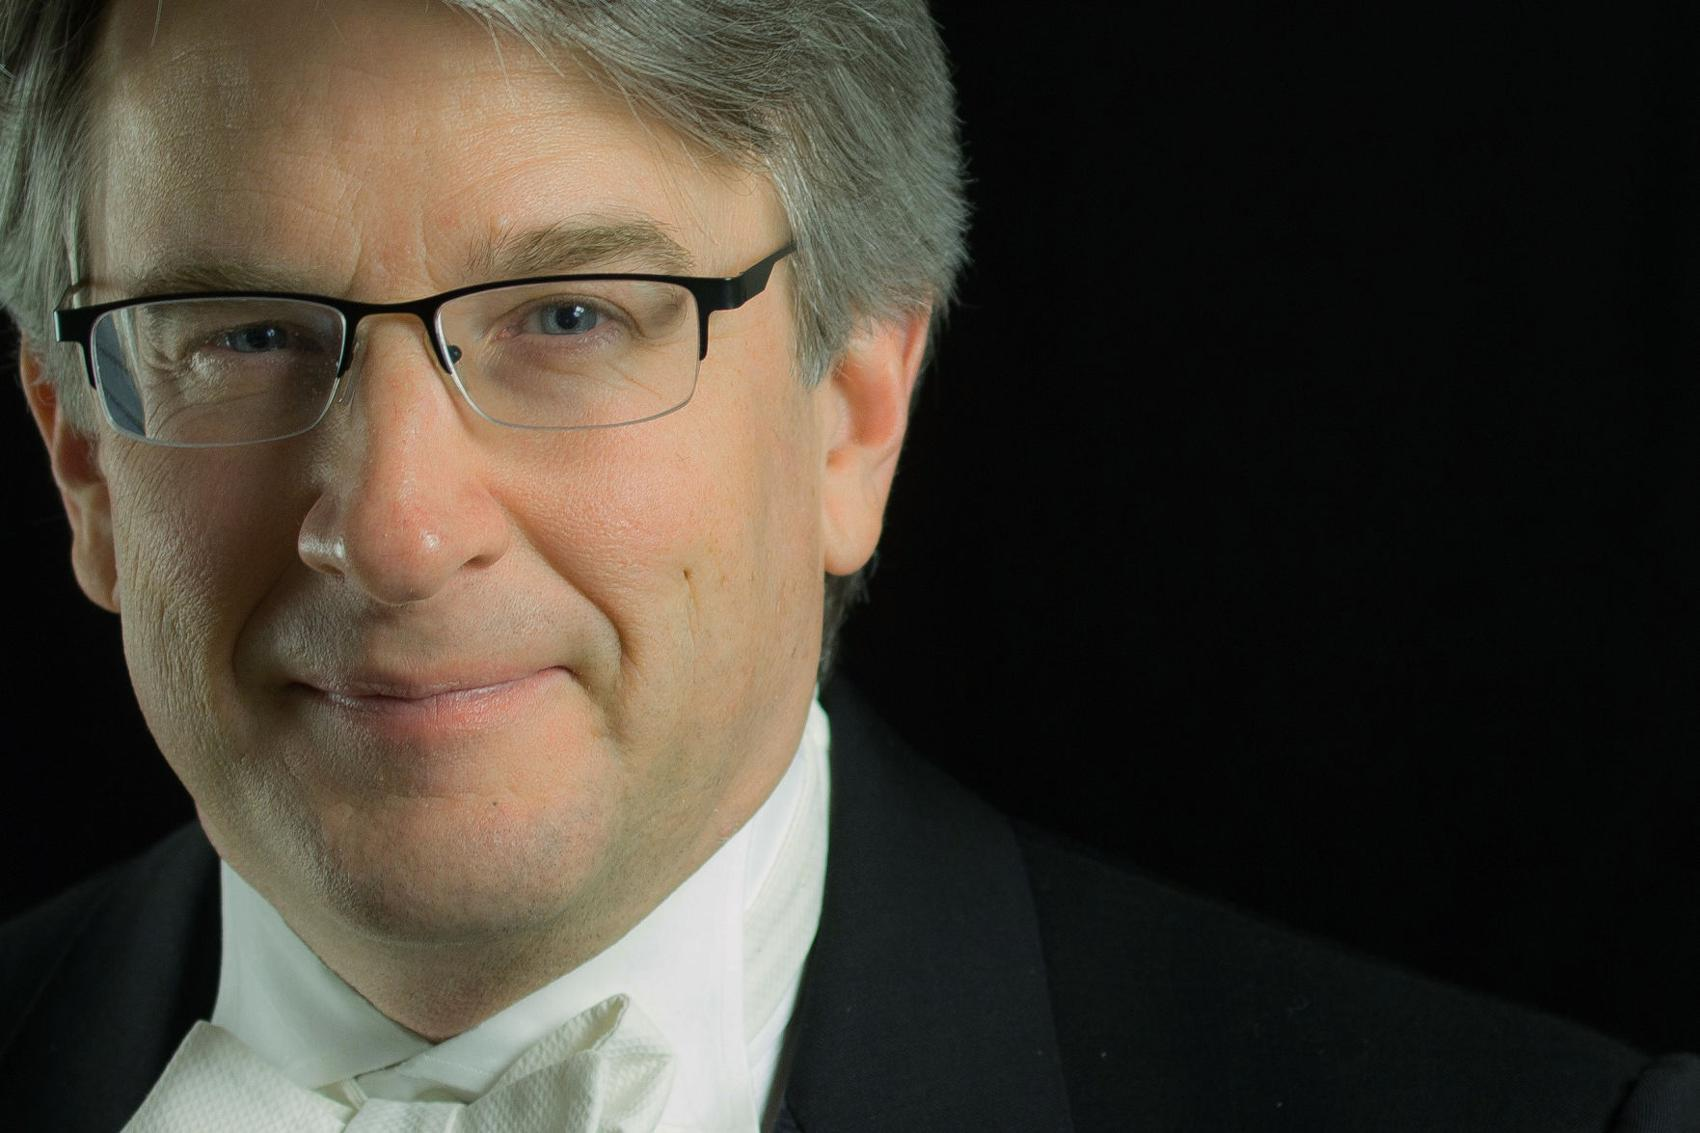 US music director calls time after 20 years